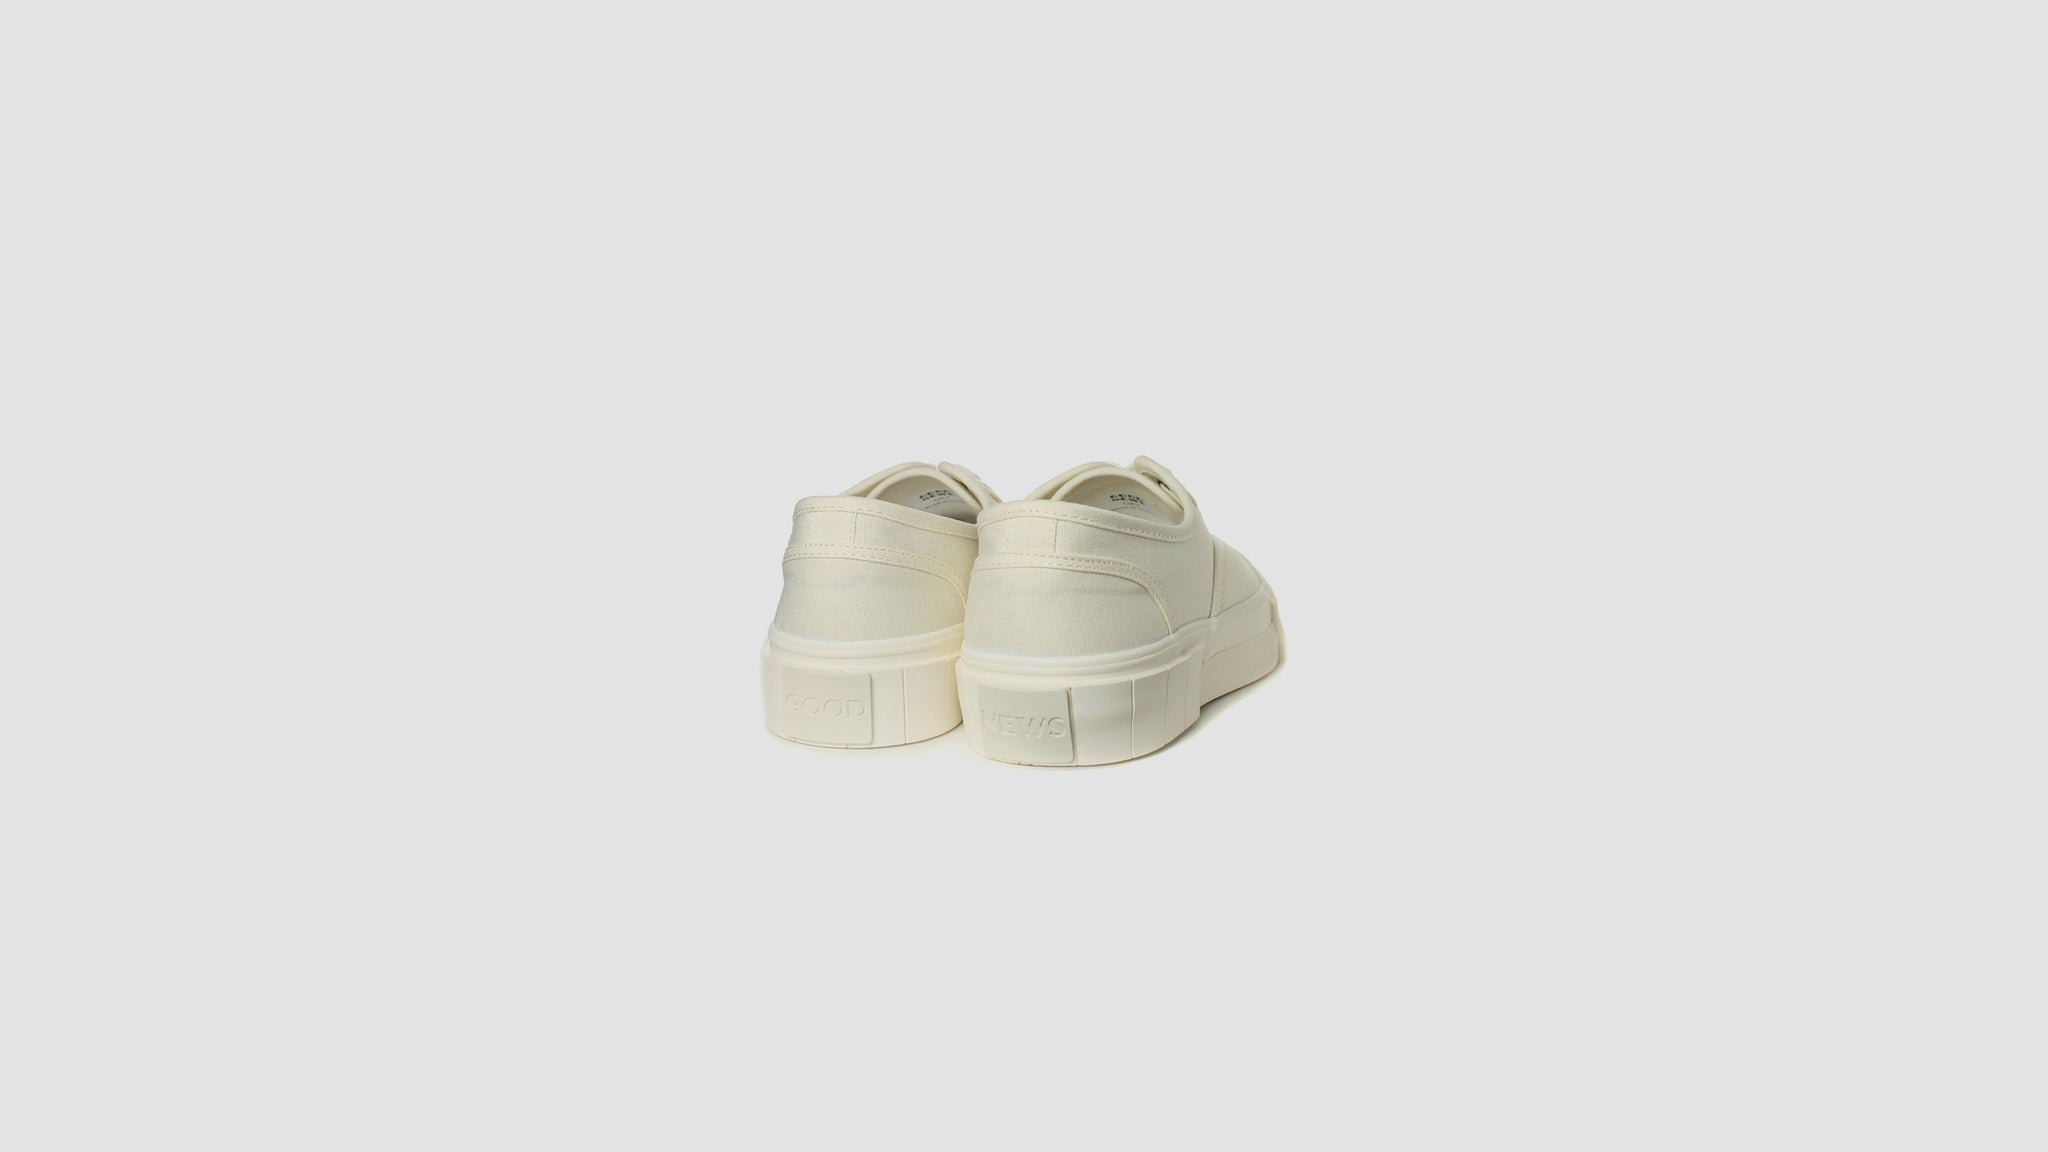 Good News. Bagger 2 low off-white